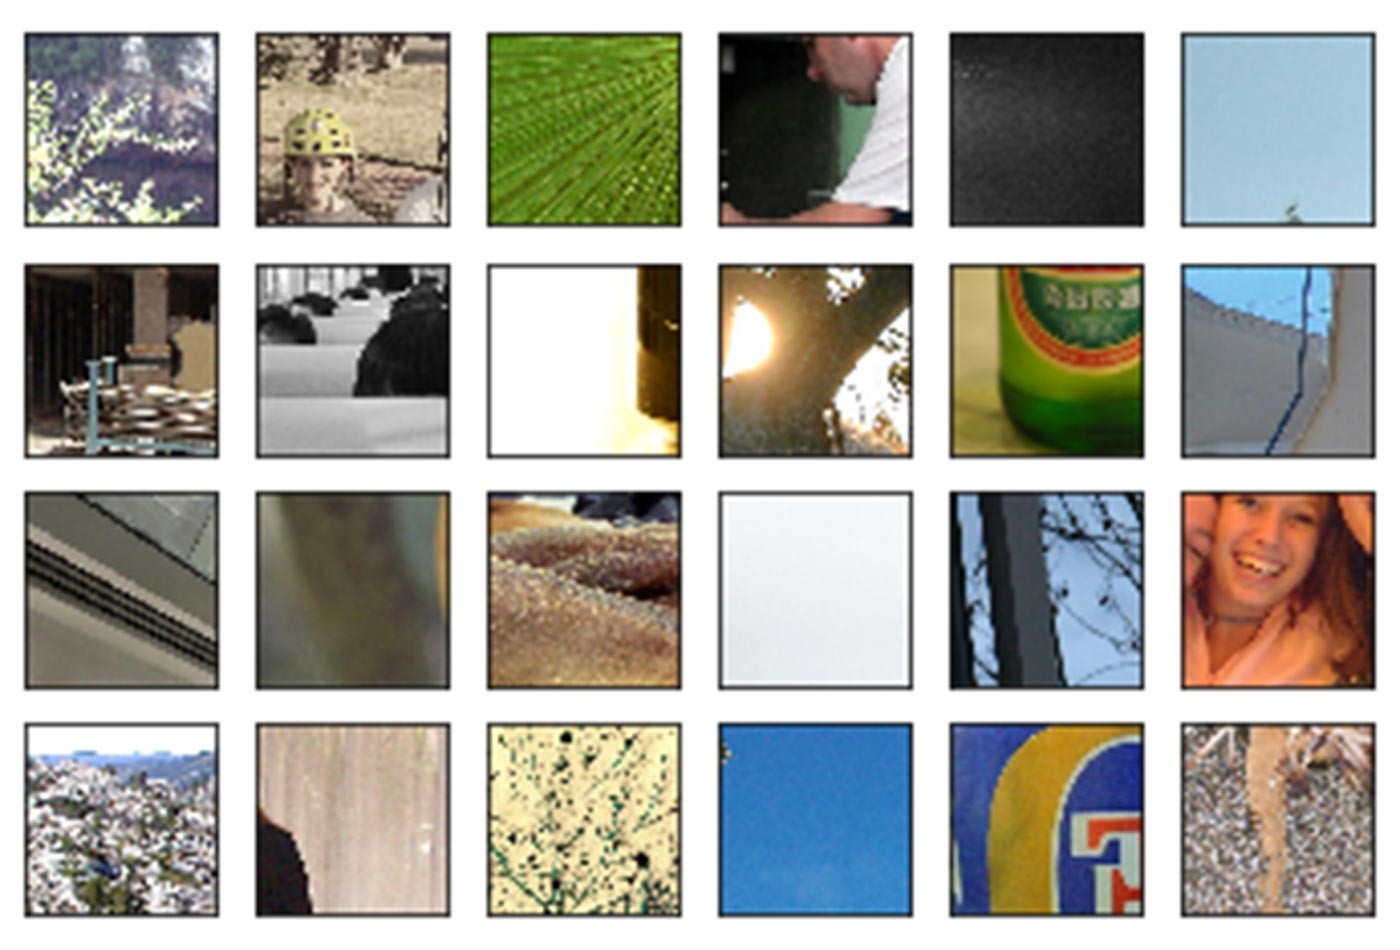 Grid of images after transformations are performed.